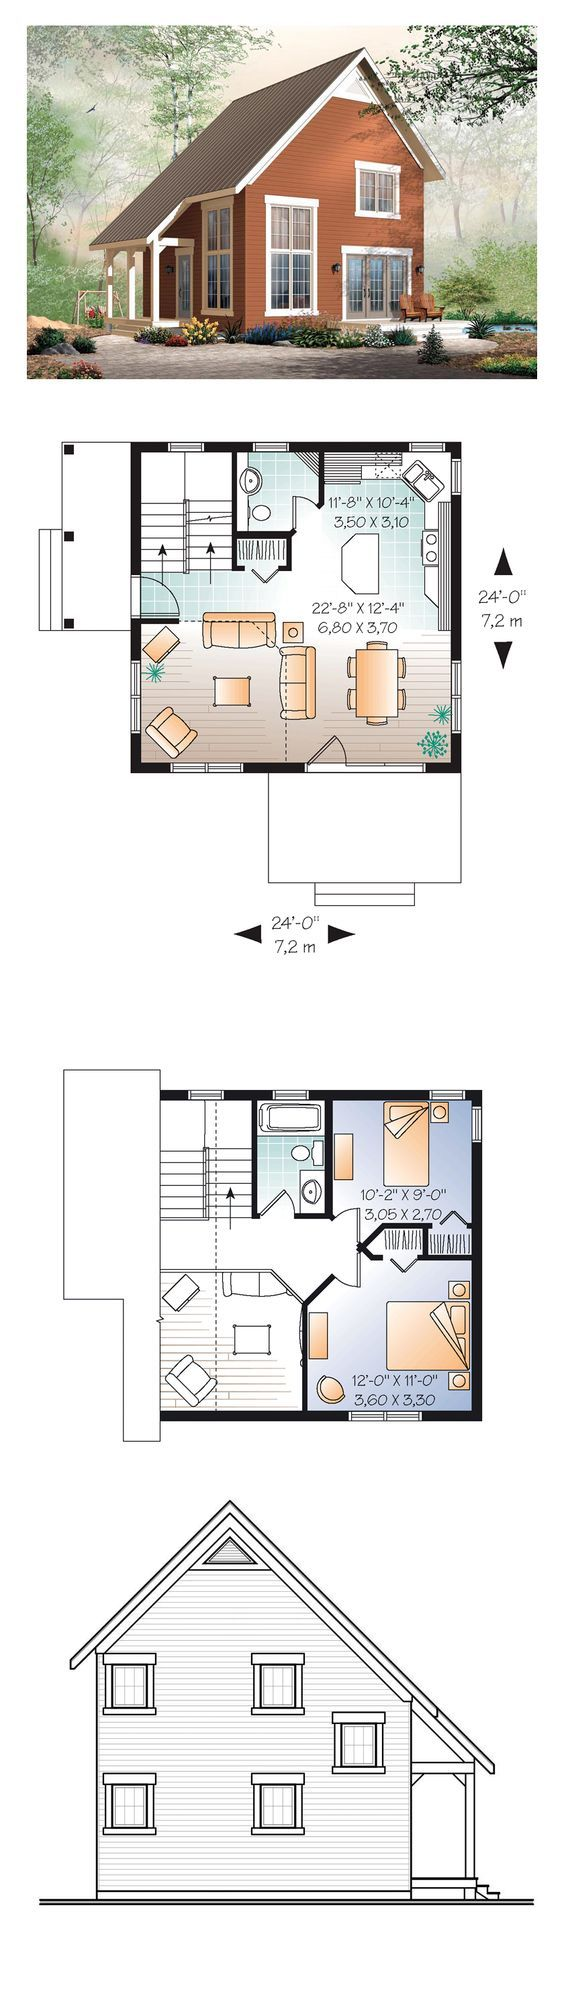 Traditional Style House Plan with 2 Bed 2 Bath